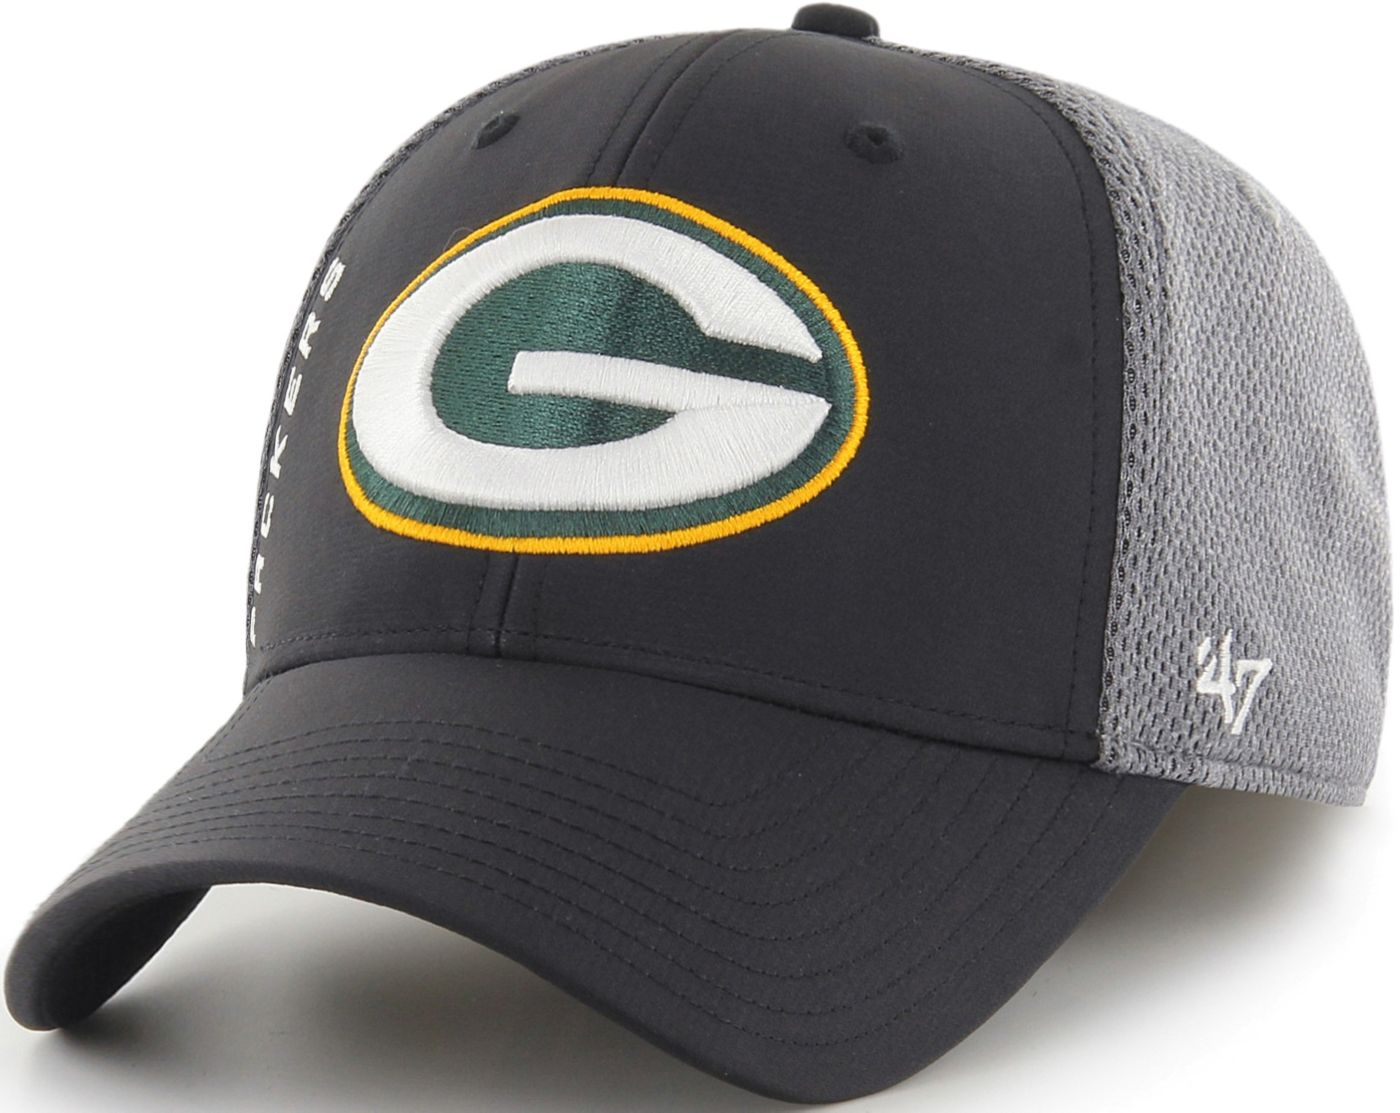 '47 Men's Green Bay Packers Wycliff Contender Stretch Fit Black Hat